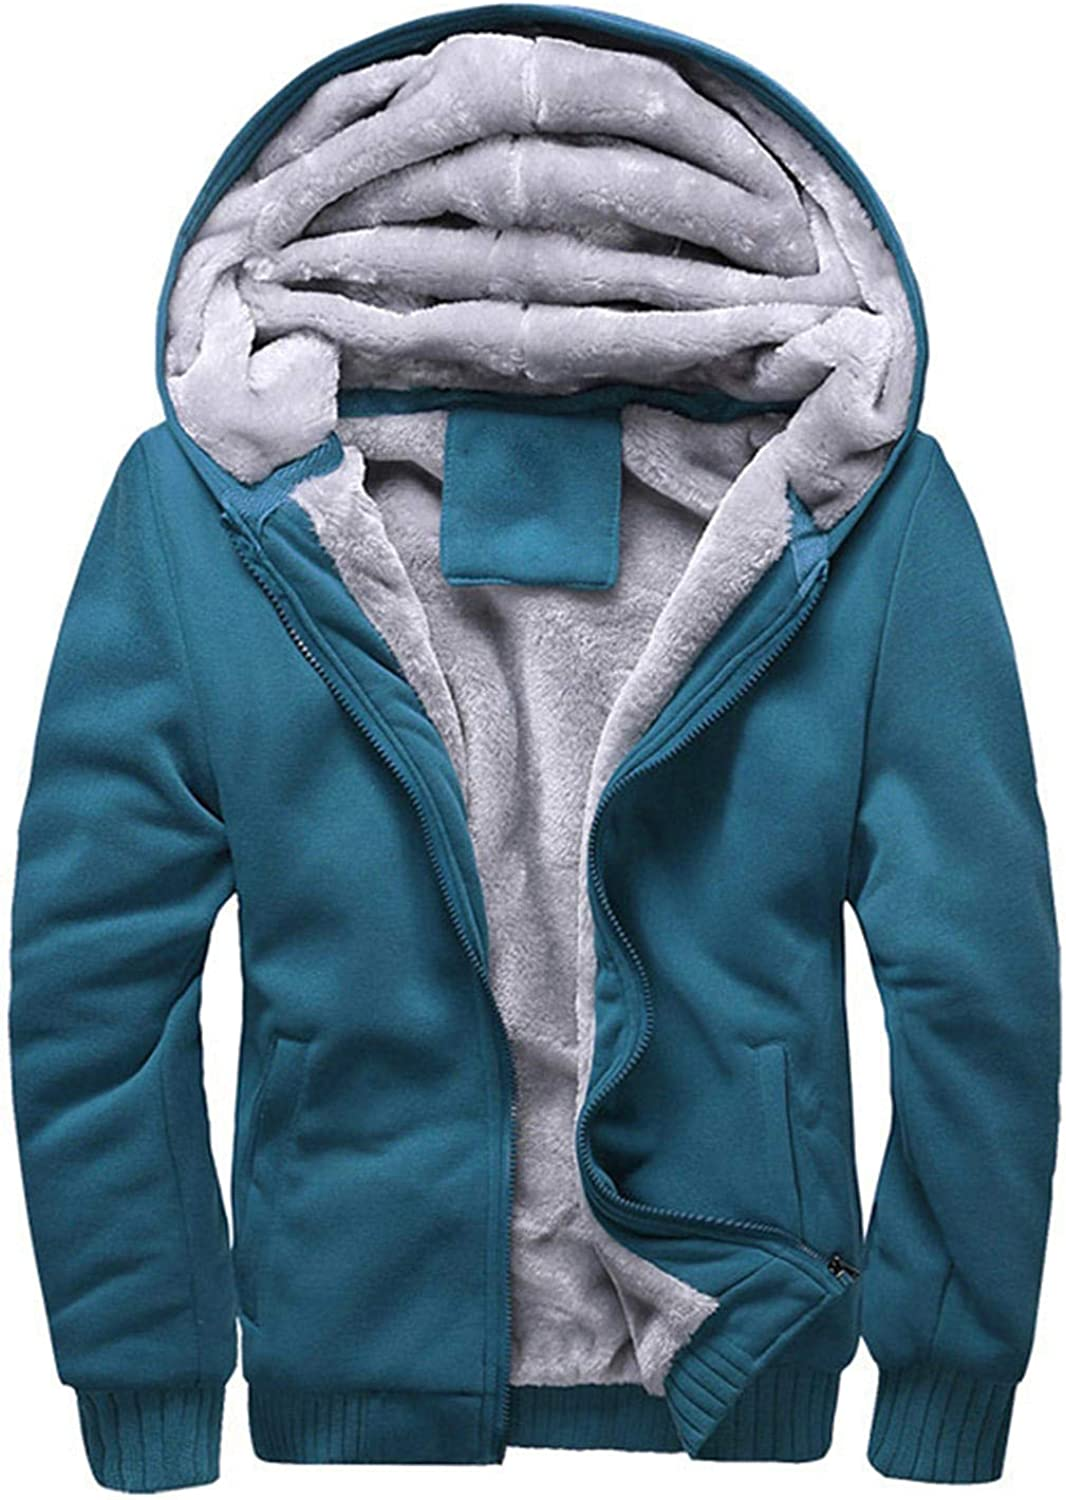 Soluo Men's Pullover Winter Workout Fleece Hoodie Jackets Full Zip Wool Warm Thick Coats (Blue,X-Large)